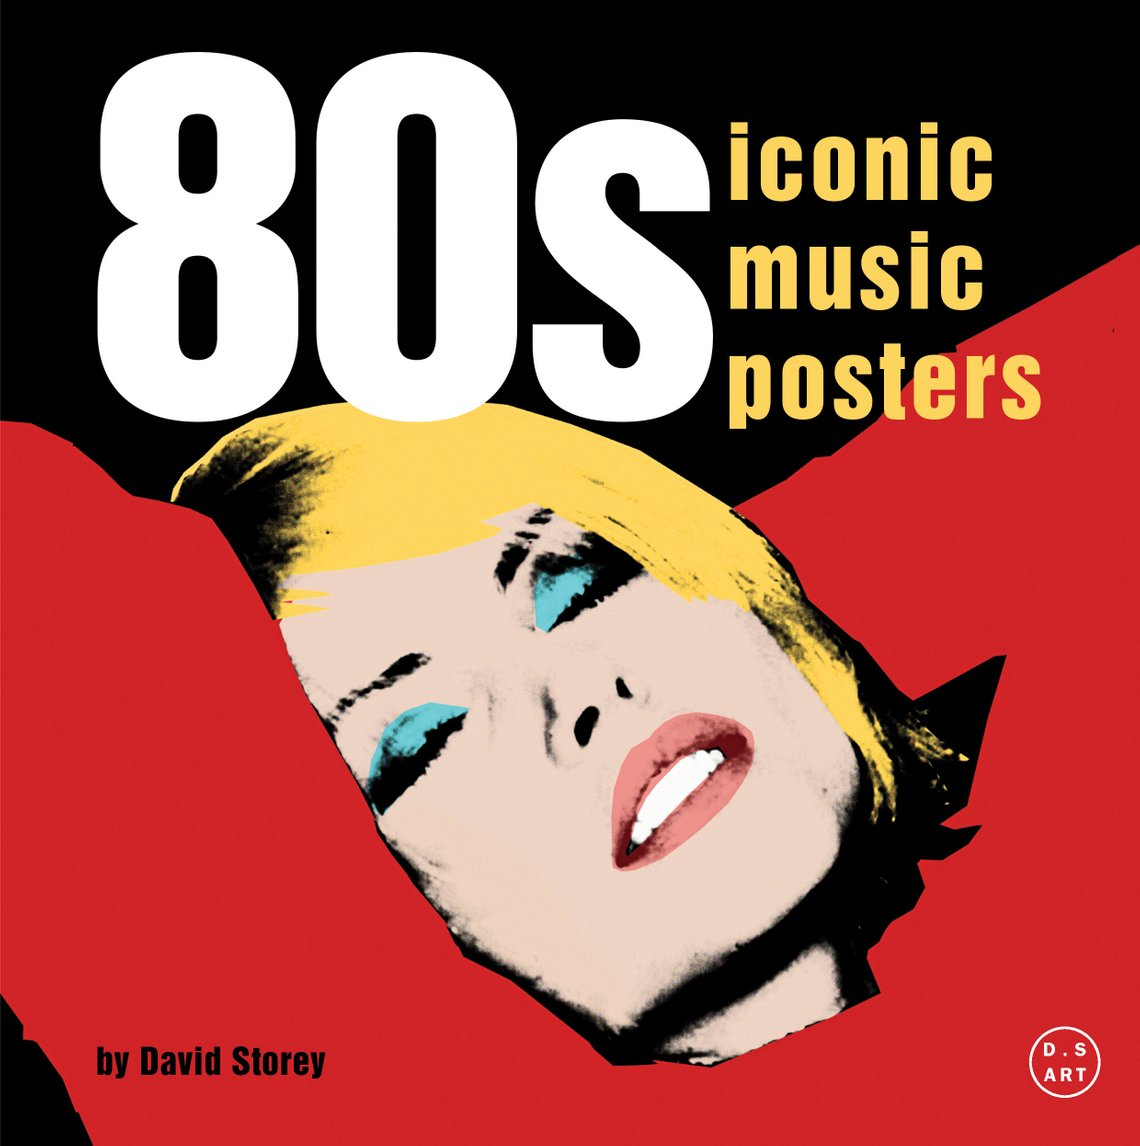 This book cover features Blondie's Debbie Harry leaning back with her hands  behind her head and